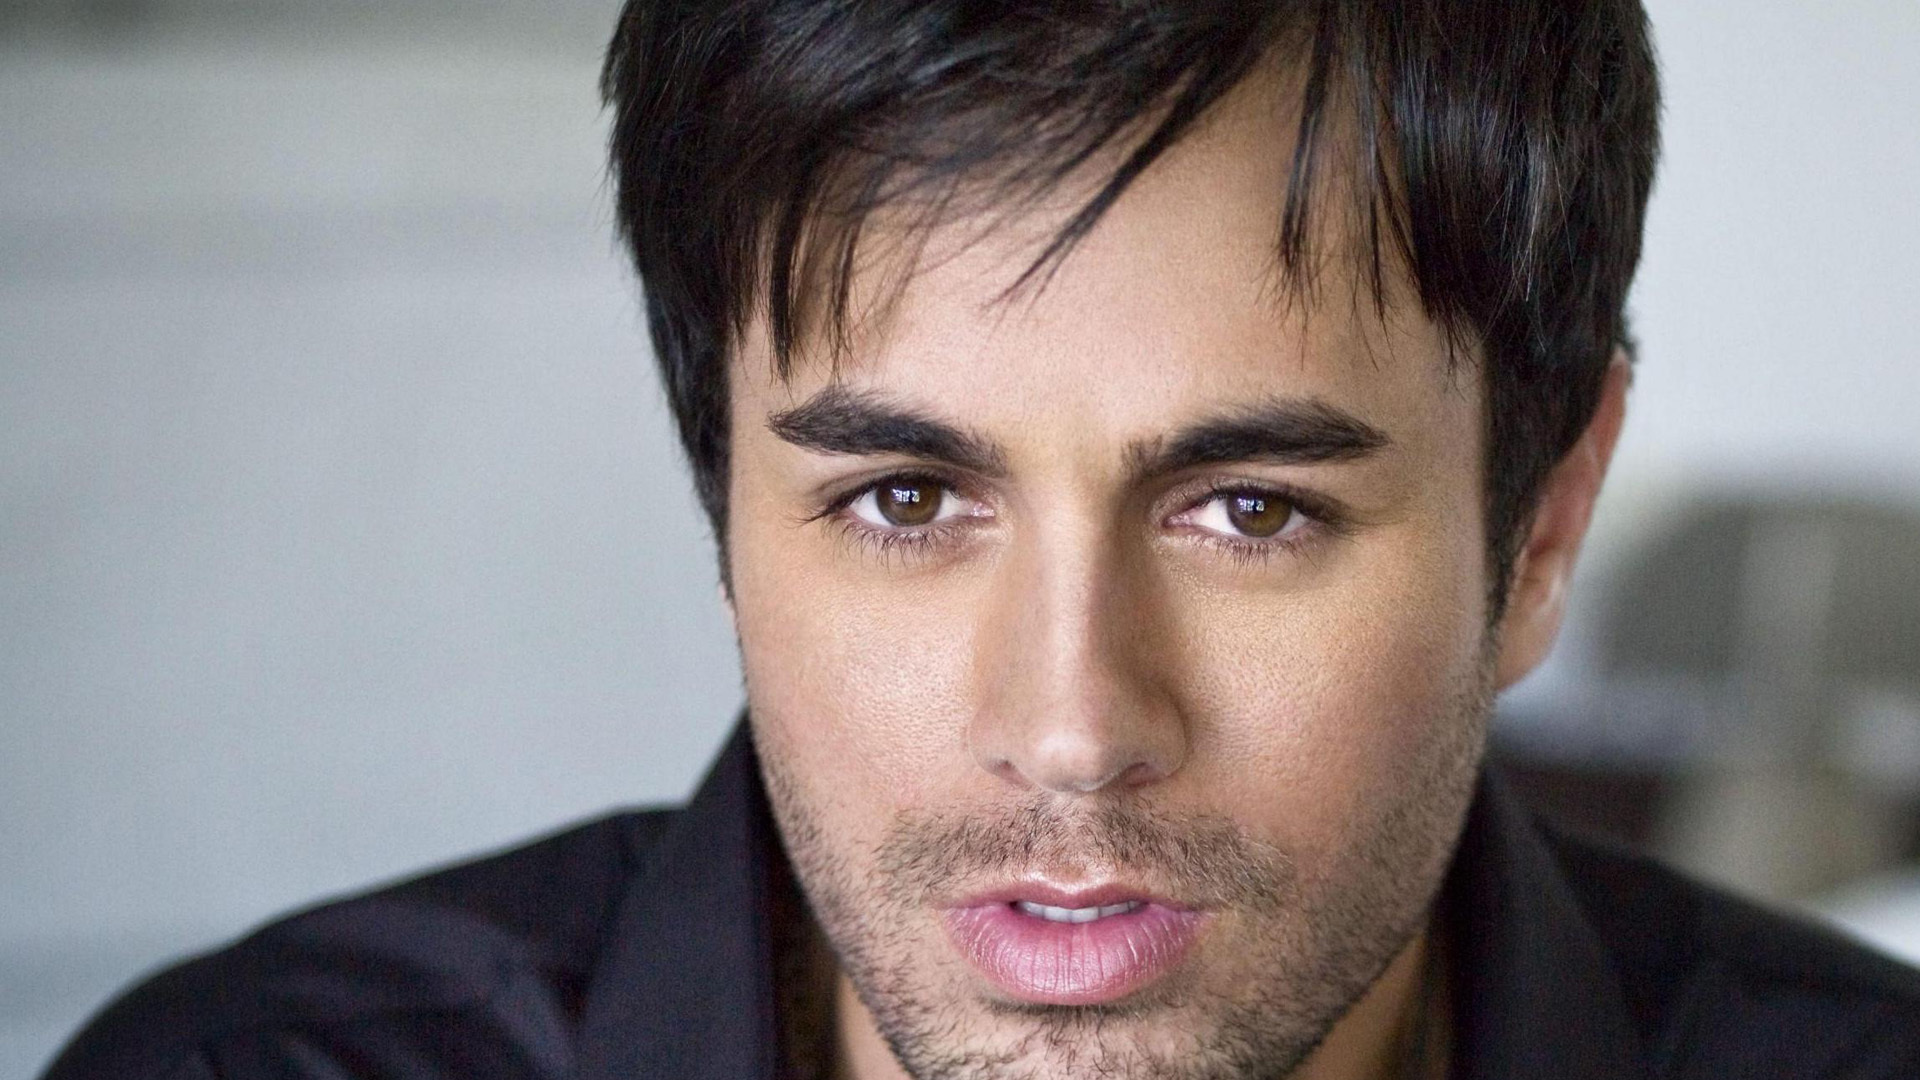 Enrique Iglesias Computer Wallpaper